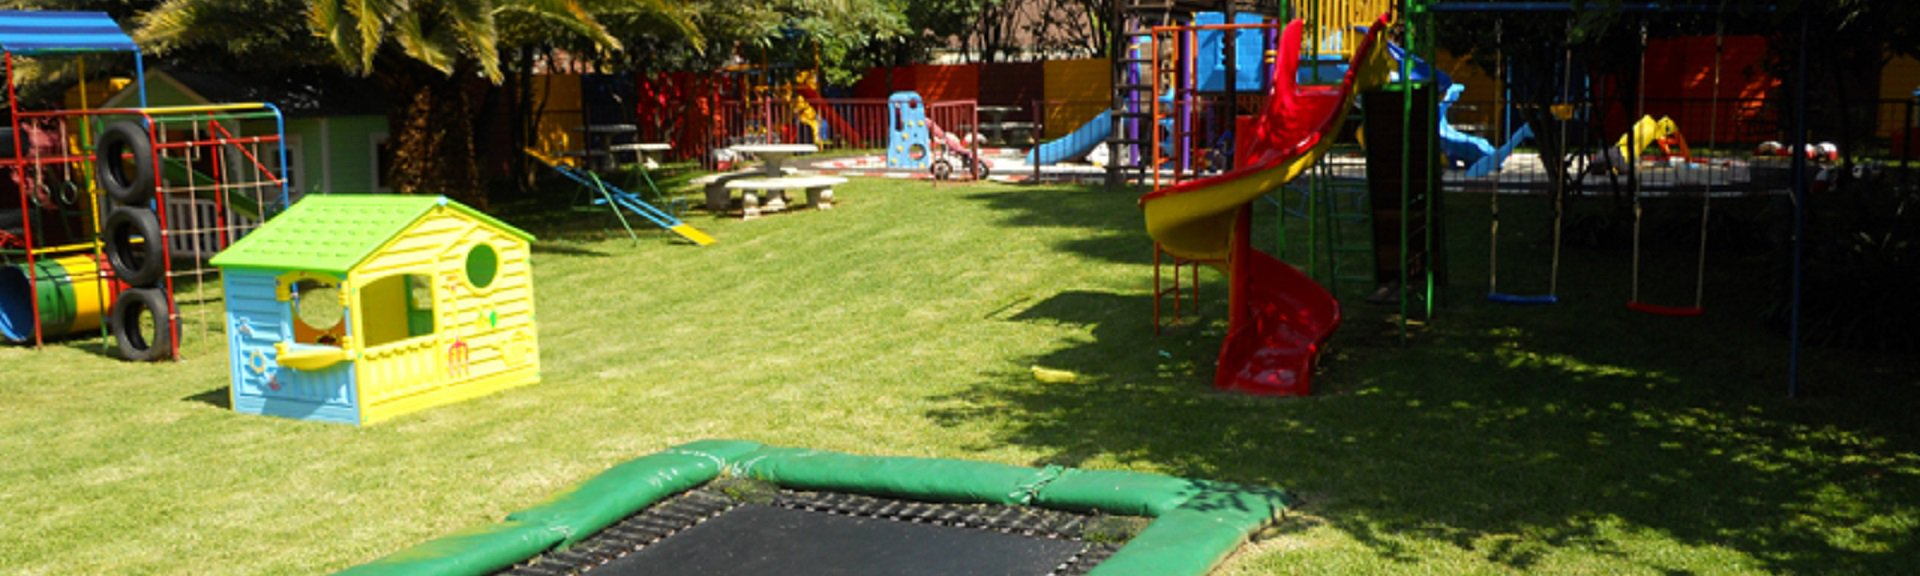 Jungle Joes Johannesburg | Kids Outdoor Party Venue